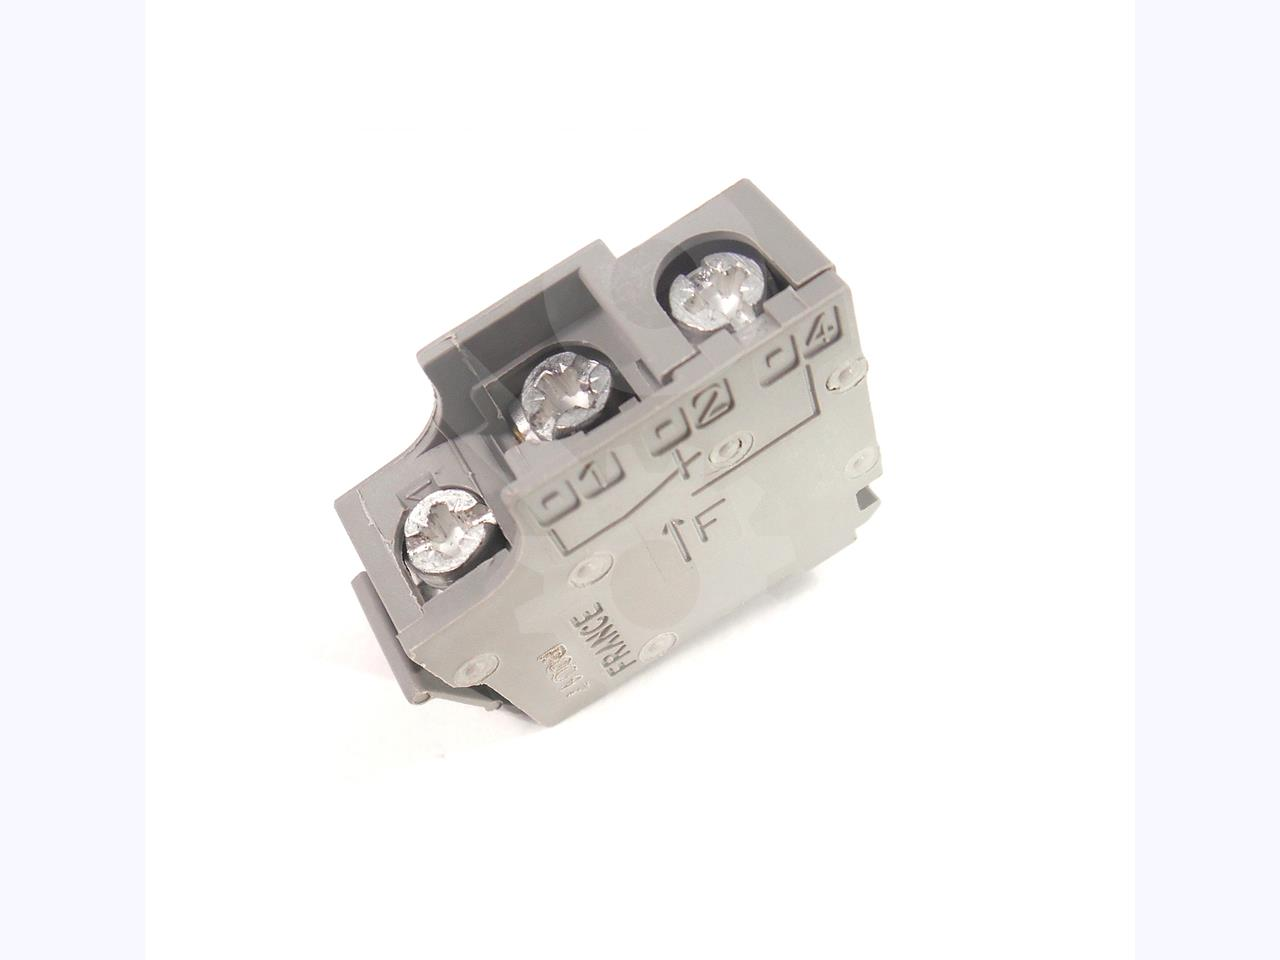 Square D SQD AUXILIARY SWITCH 1 NO/ NC FORM C